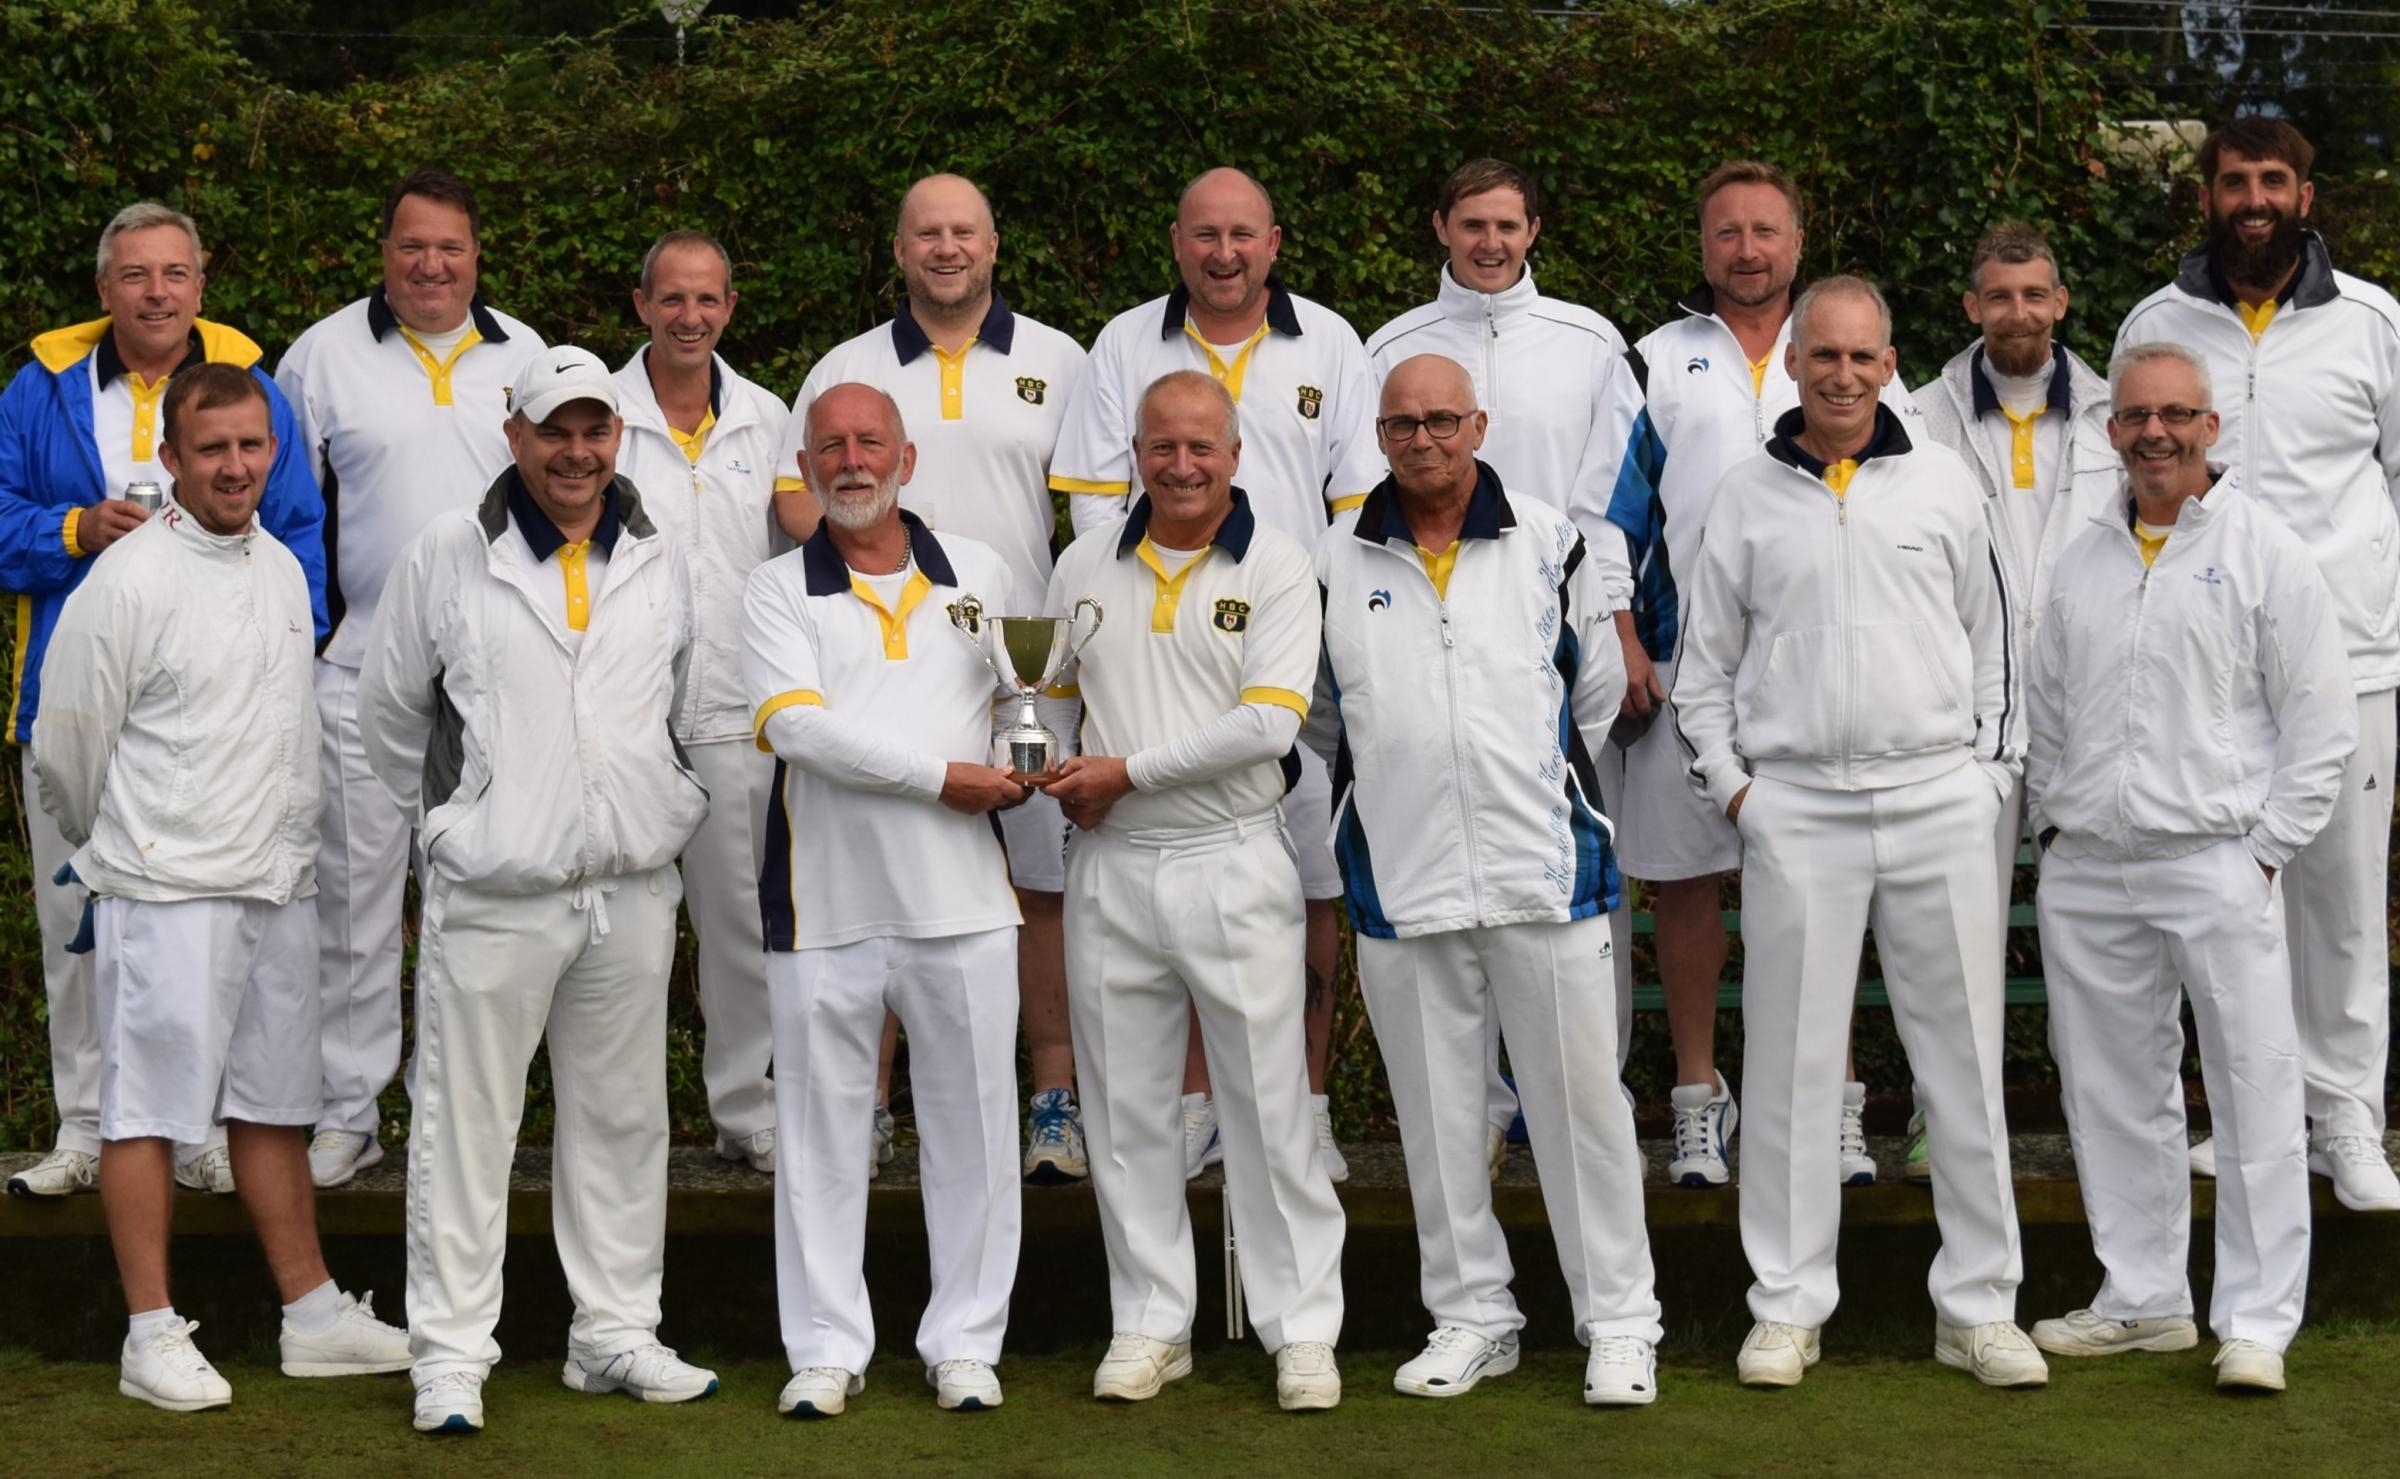 Headington Bowls Club team celebrate after winning the Oxford & District League Cup for the fifth year in a row